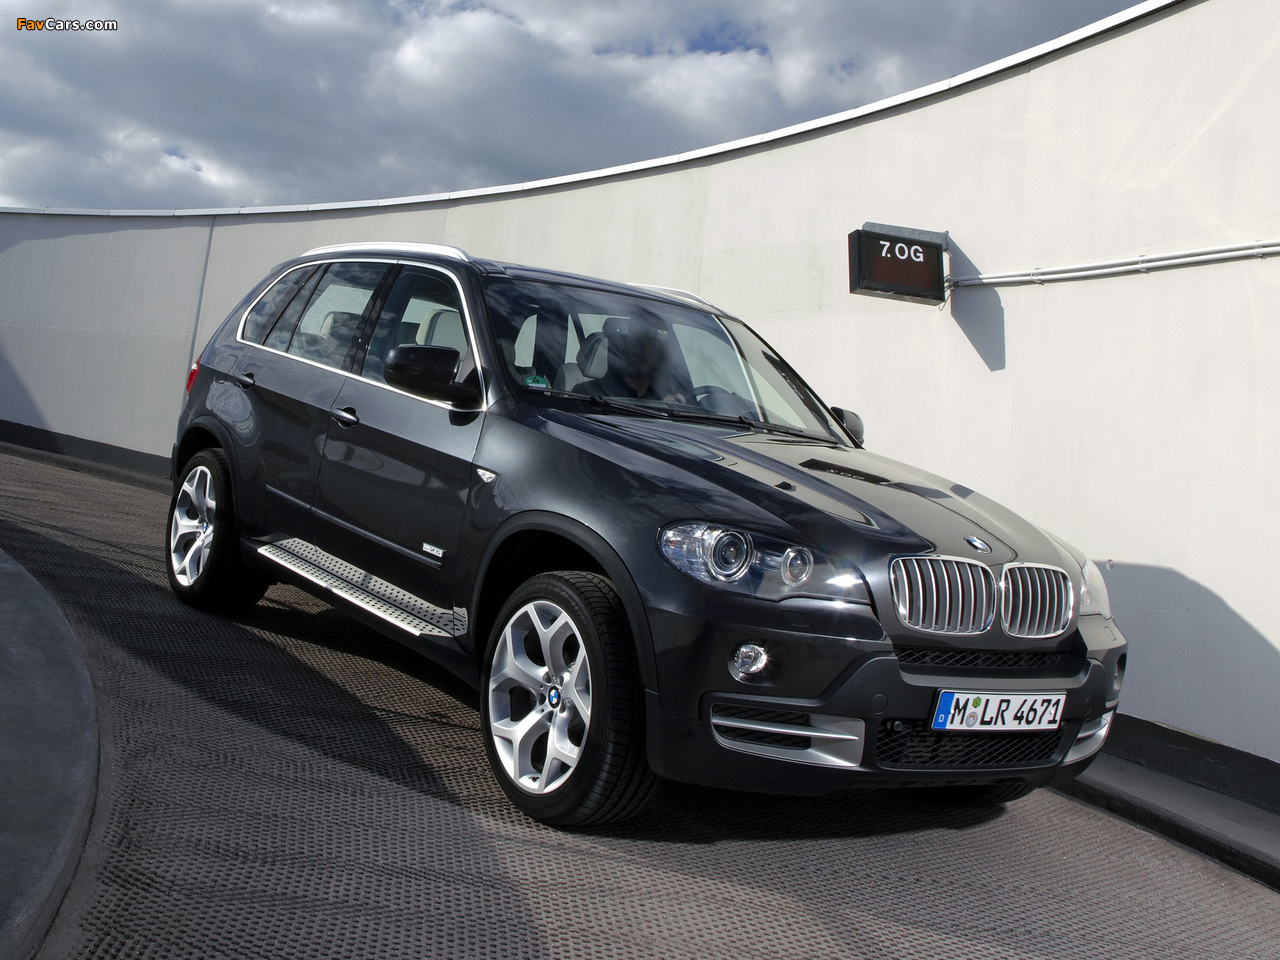 Photos Of Bmw X5 Xdrive35d 10 Year Edition E70 2009